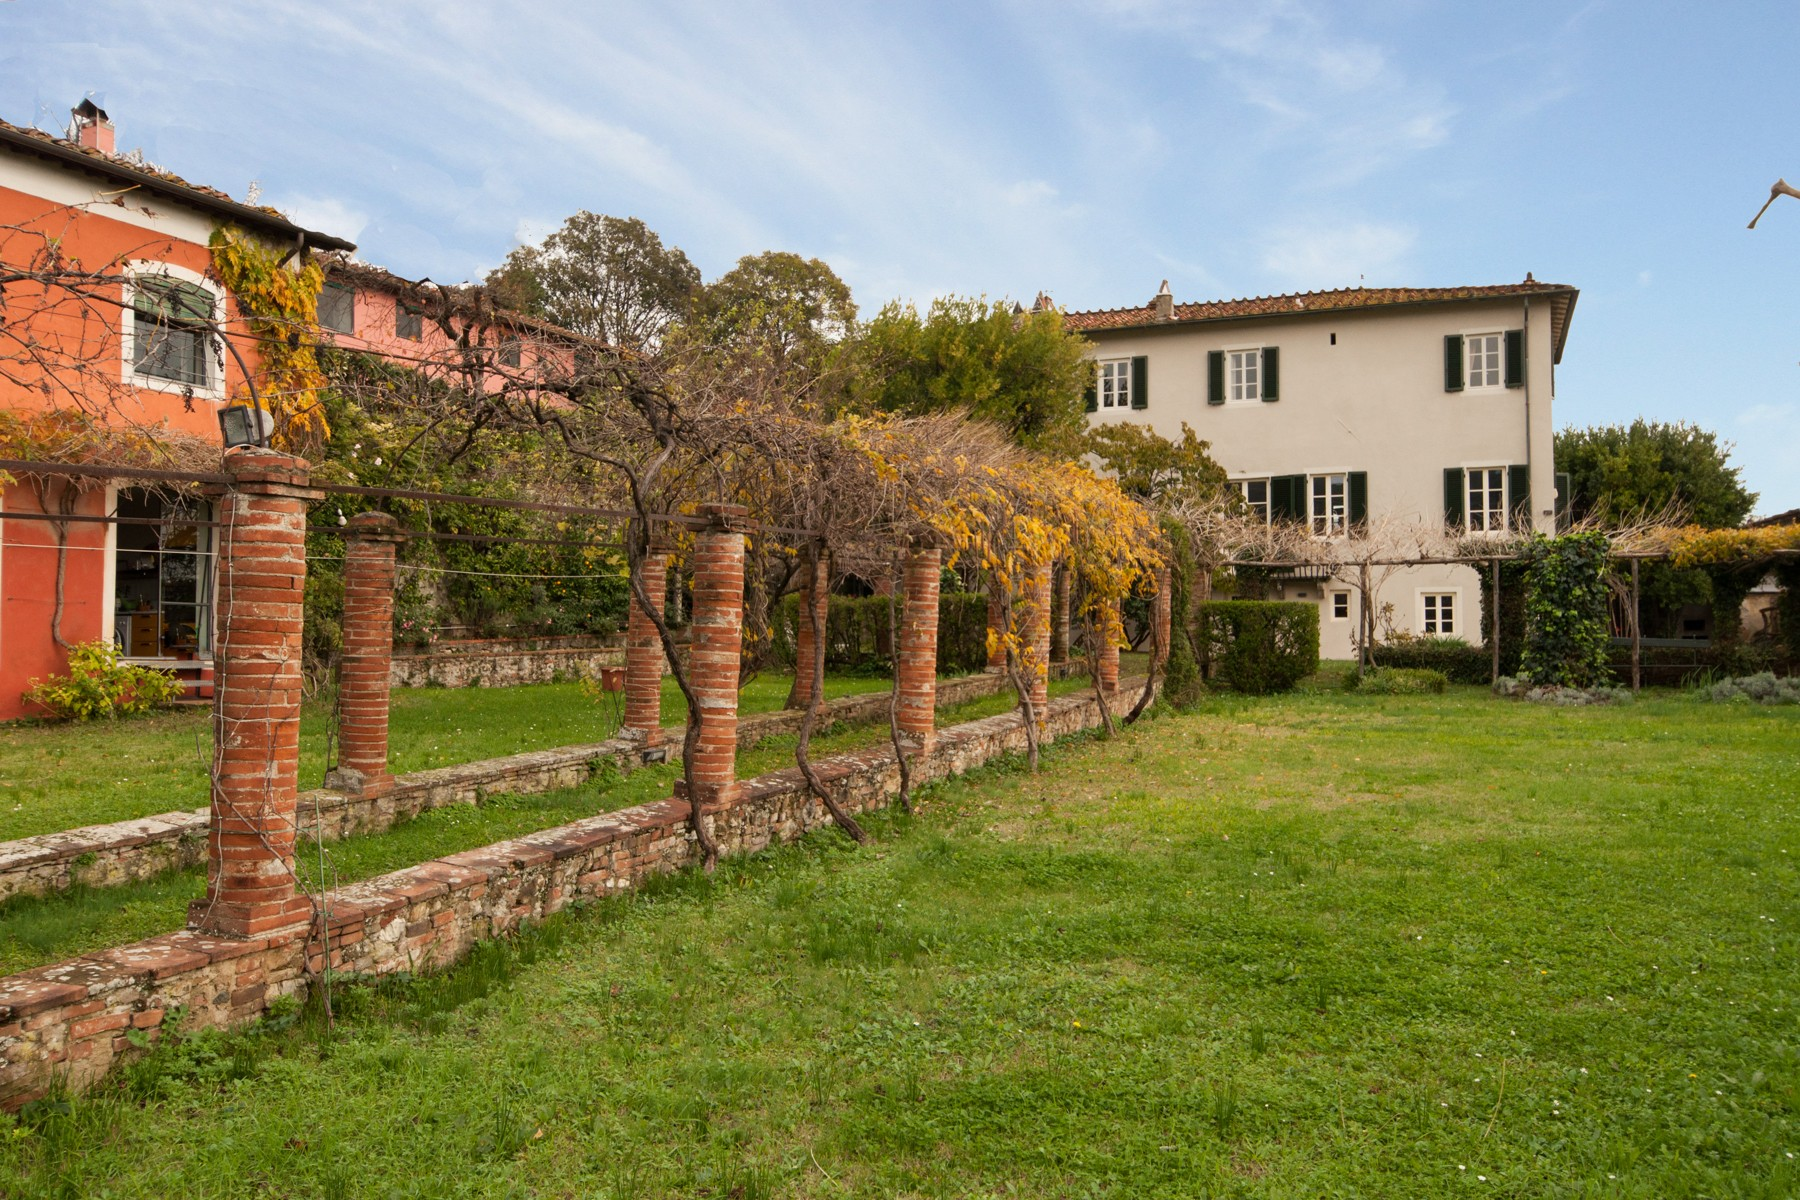 Single Family Home for Sale at Enchanting property in Lucca countryside San Lorenzo di Moriano Lucca, Lucca 55100 Italy